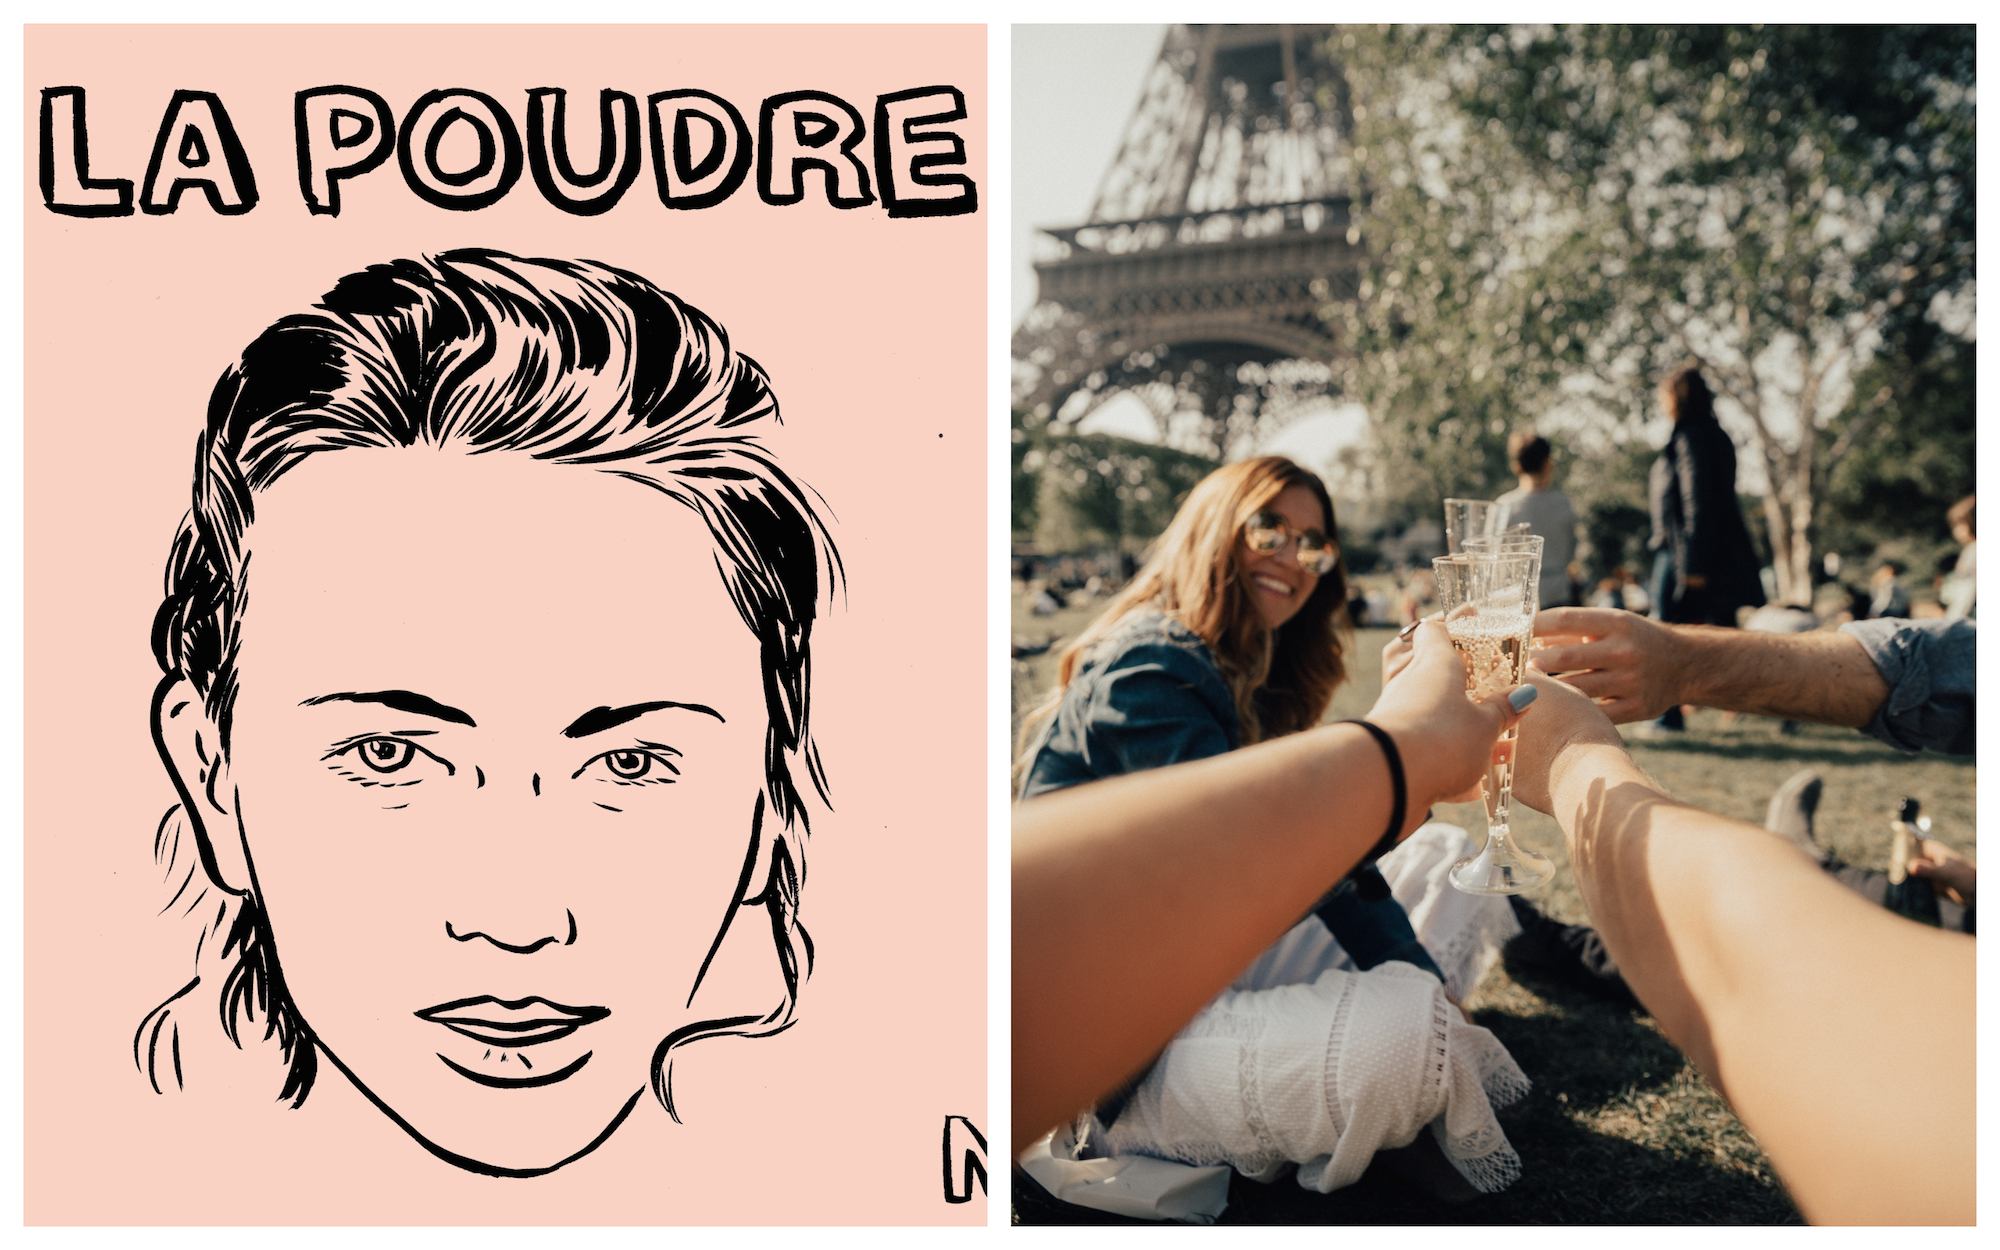 HiP Paris Blog rounds up the top French podcasts like journalist Lauren Bastide's La Poudre (left), which can be enjoyed any time, even on the way to drinks with your friends at the Eiffel Tower (right).